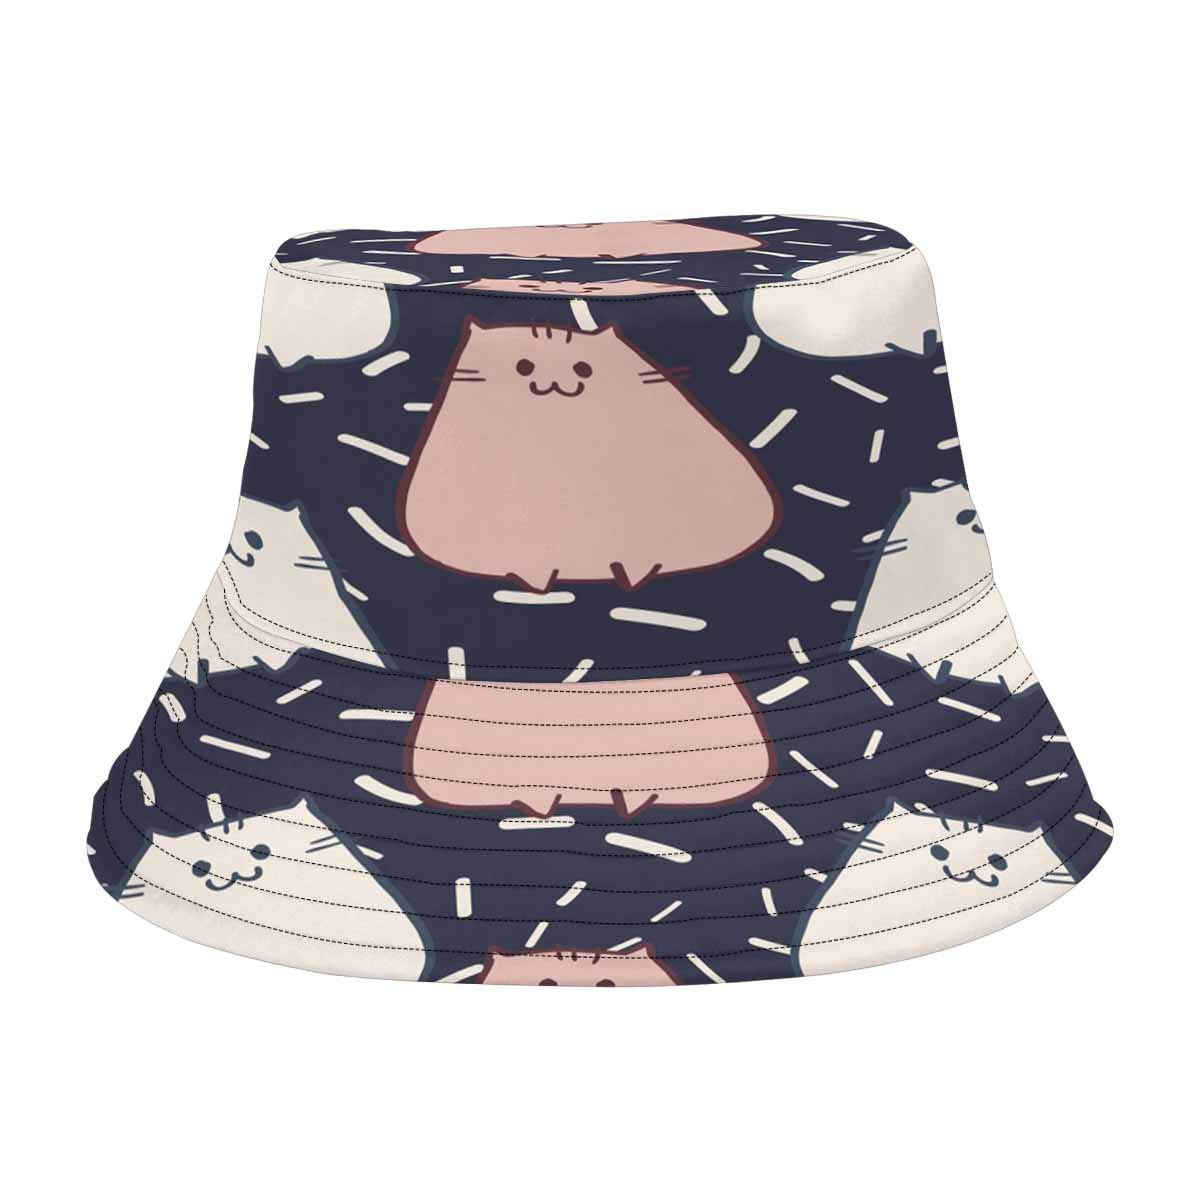 187142810ac INTERESTPRINT Cat Or Dog White Paw Prints Bucket Hat Boonie Sun Hats at  Amazon Women s Clothing store